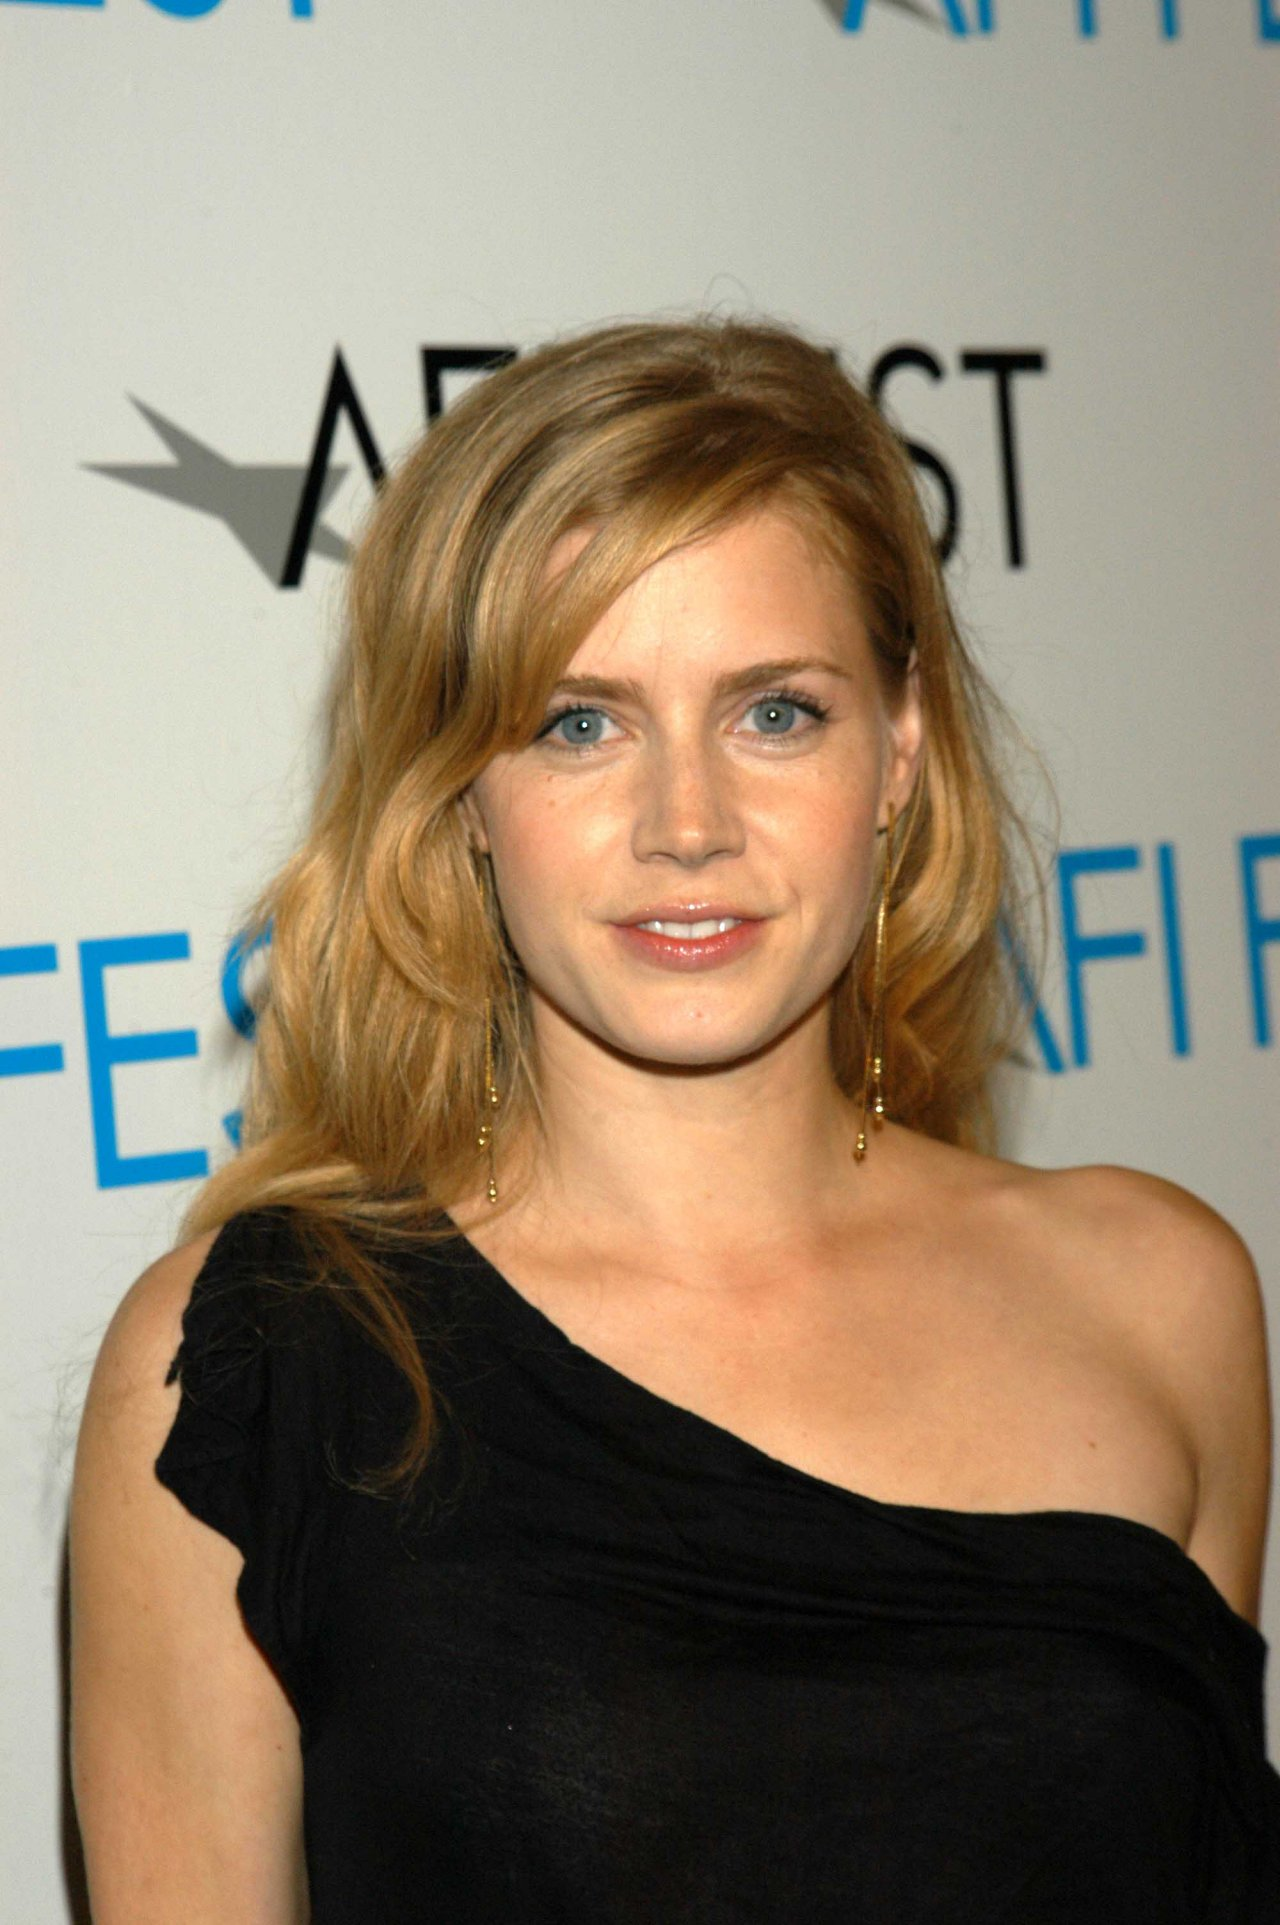 Amy Adams wallpapers (31637). Best Amy Adams pictures